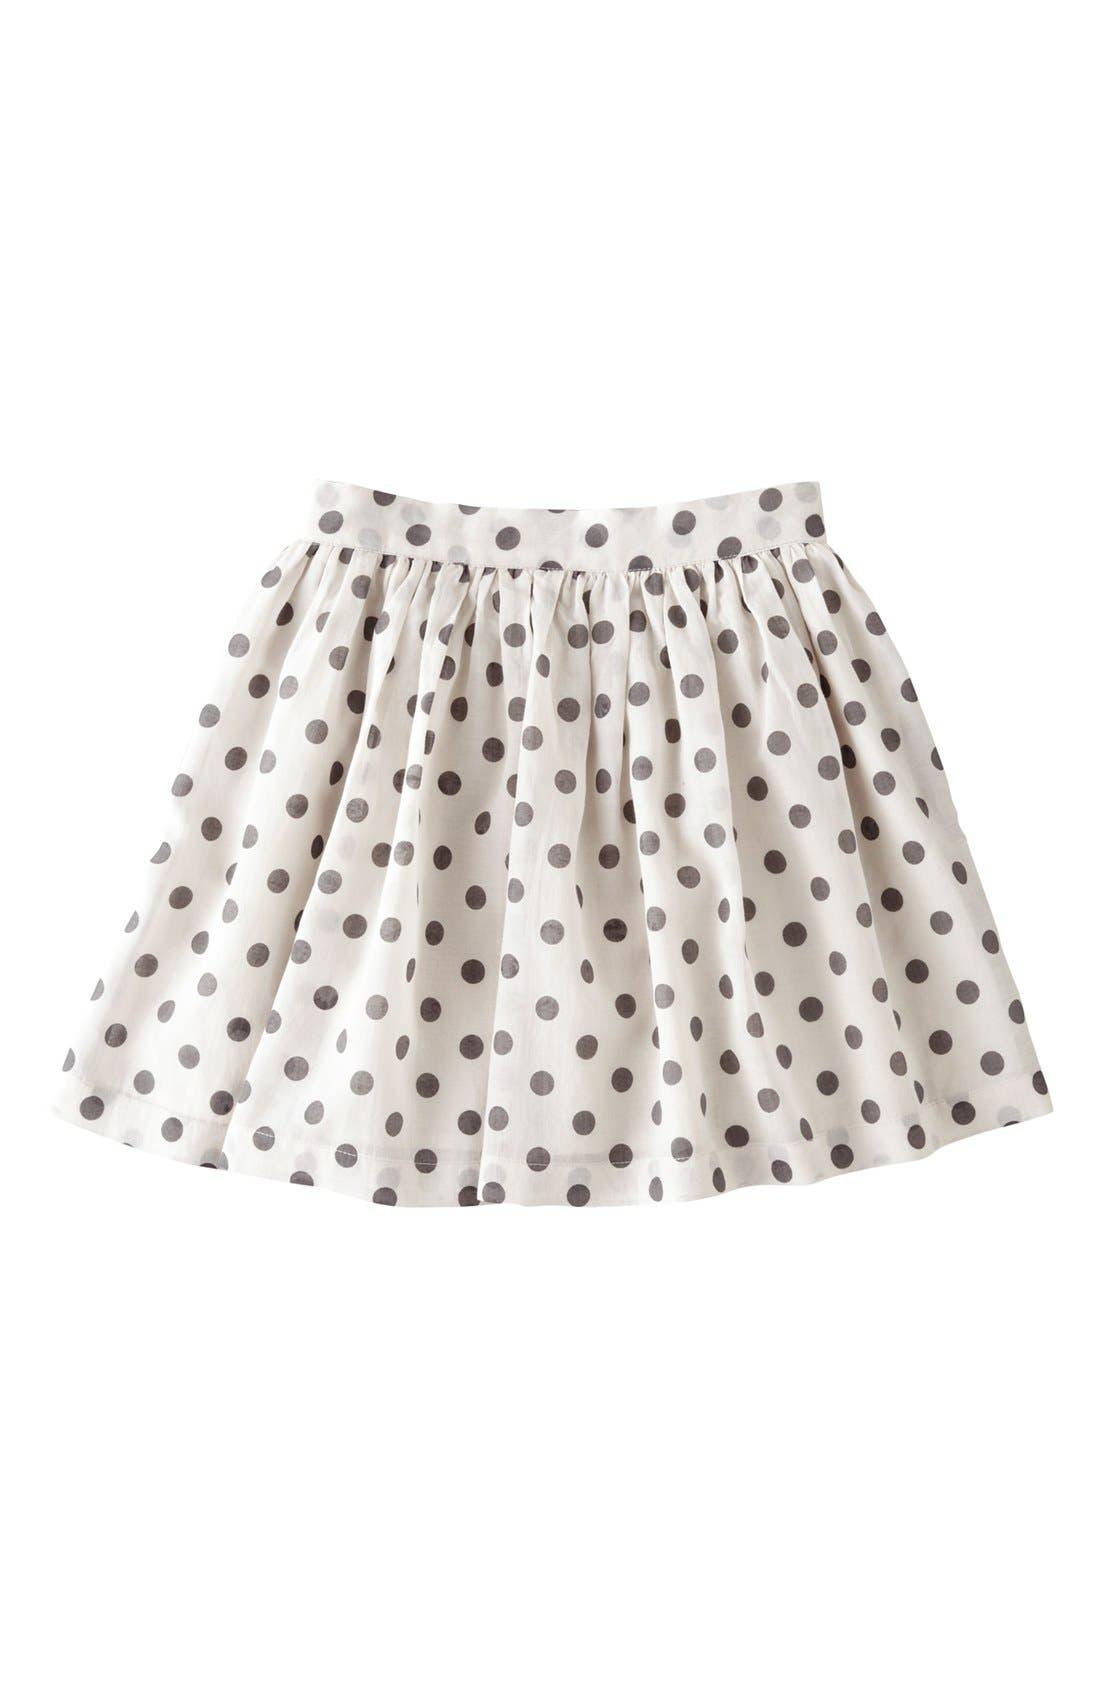 Alternate Image 1 Selected - Mini Boden Print Voile Skirt (Little Girls & Big Girls)